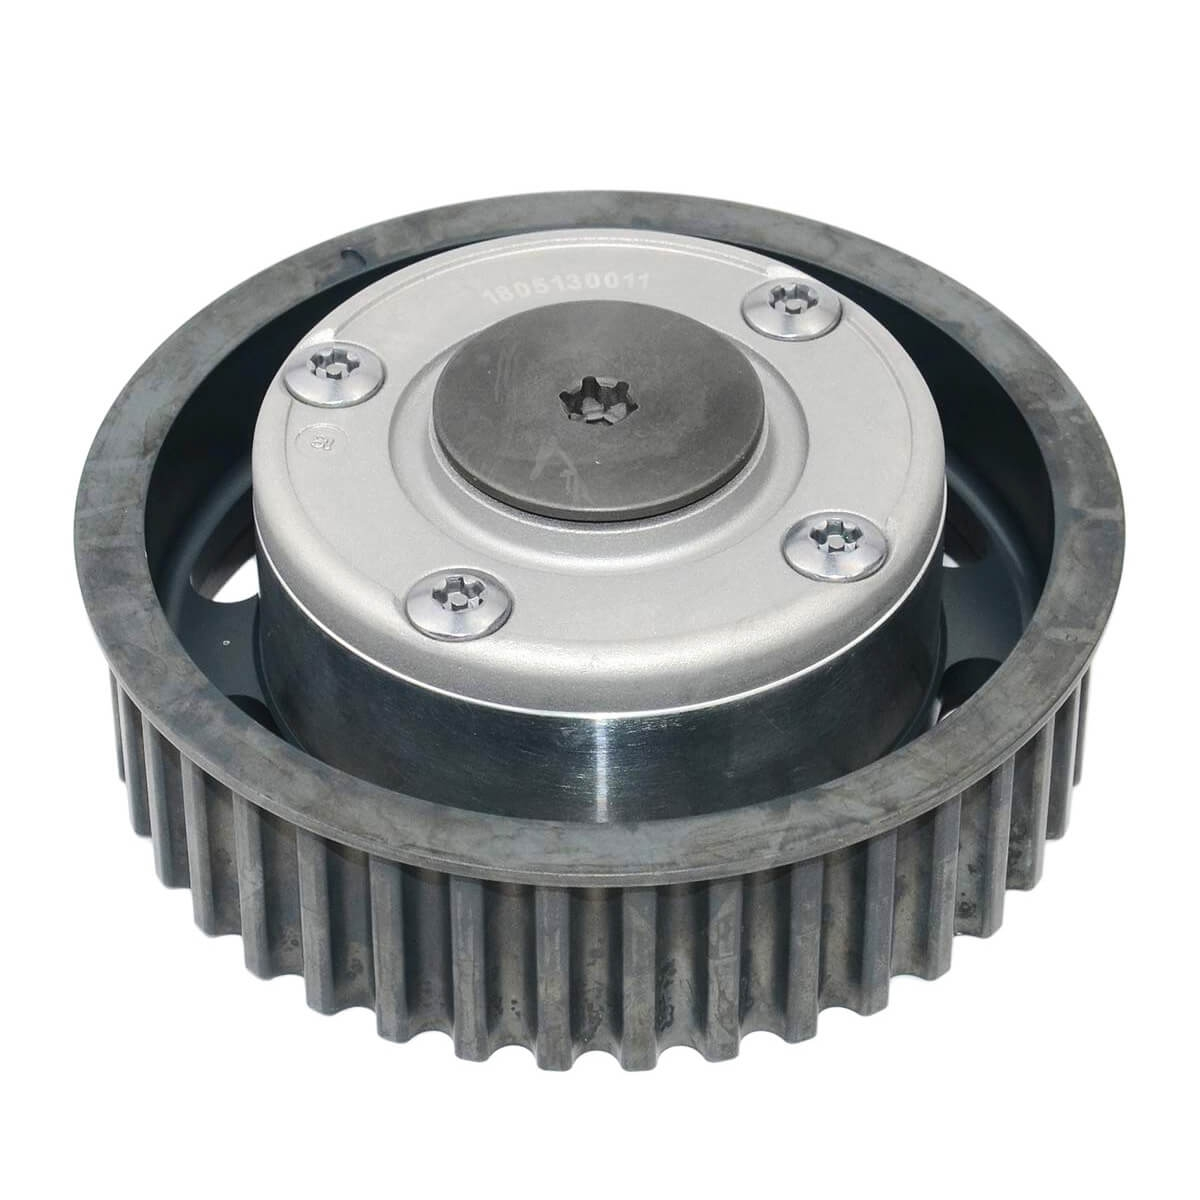 AUDI RSQ3 Cam Dephaser Pulley